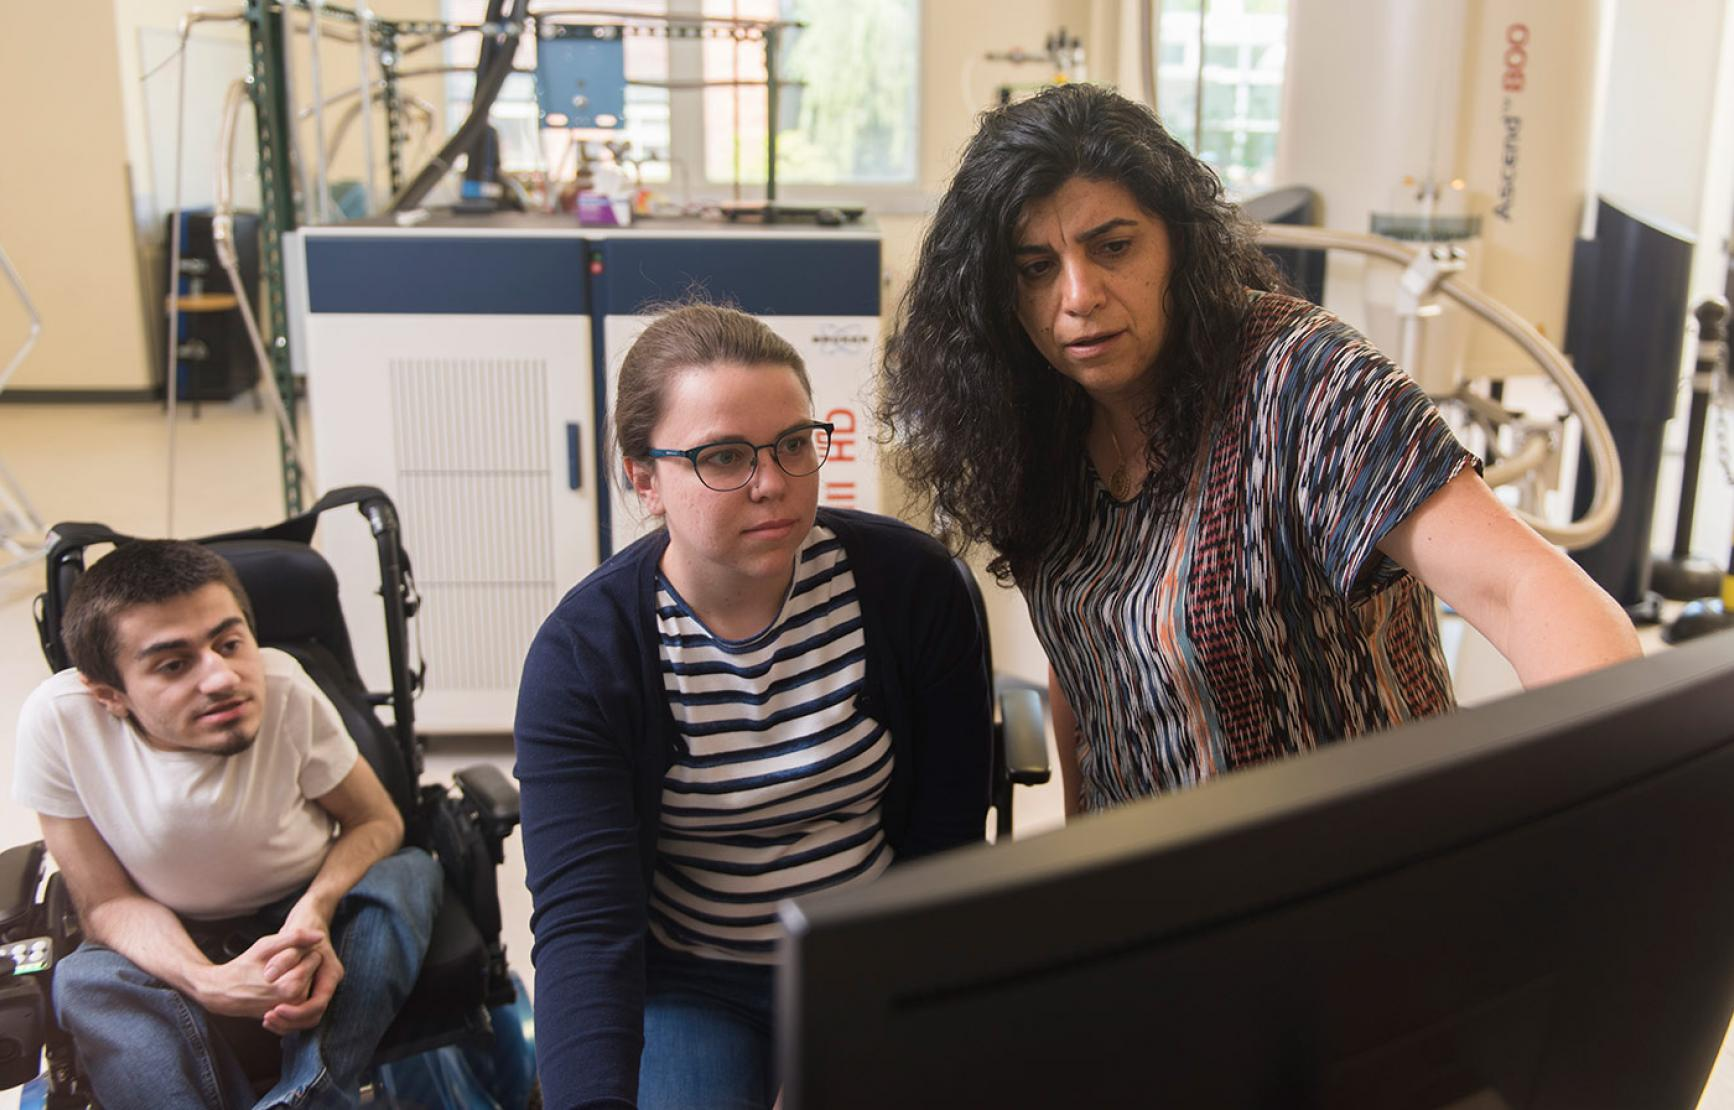 Elisar Barbar analyzing data with graduate students in lab